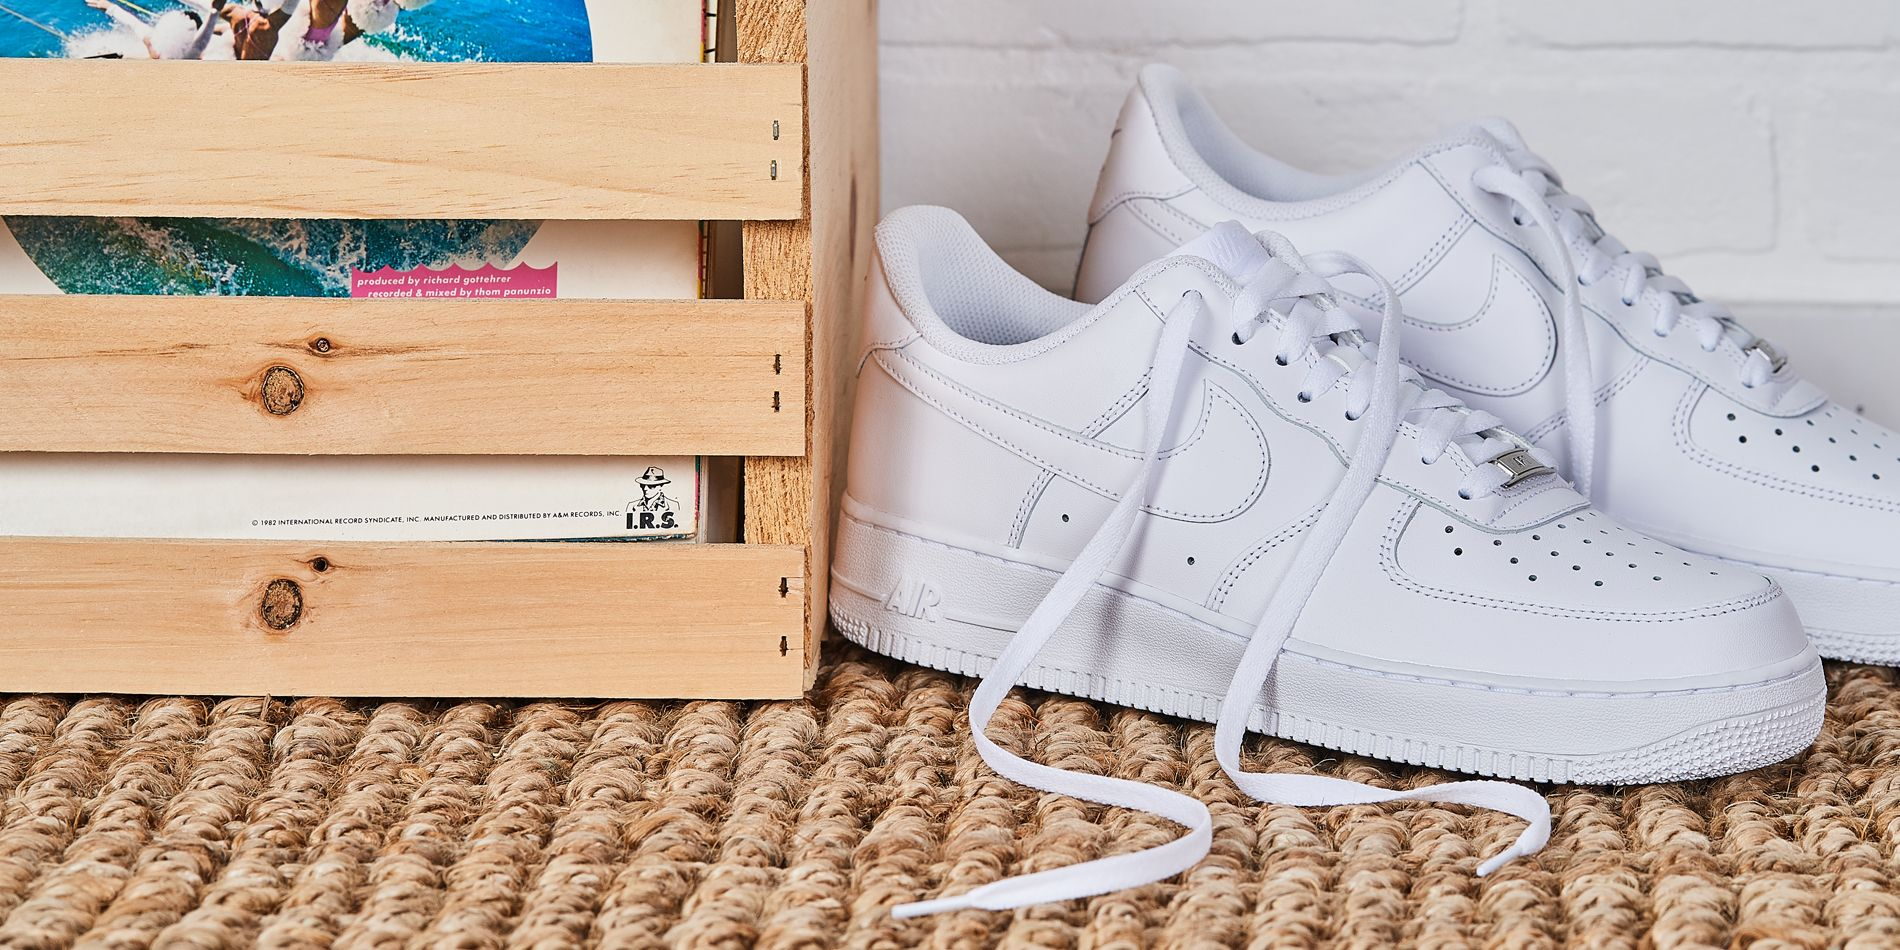 newest collection d26af 01f09 Why the Nike Air Force 1 Is an Iconic Sneaker - History of Nikes Air Force  1 Low Shoe